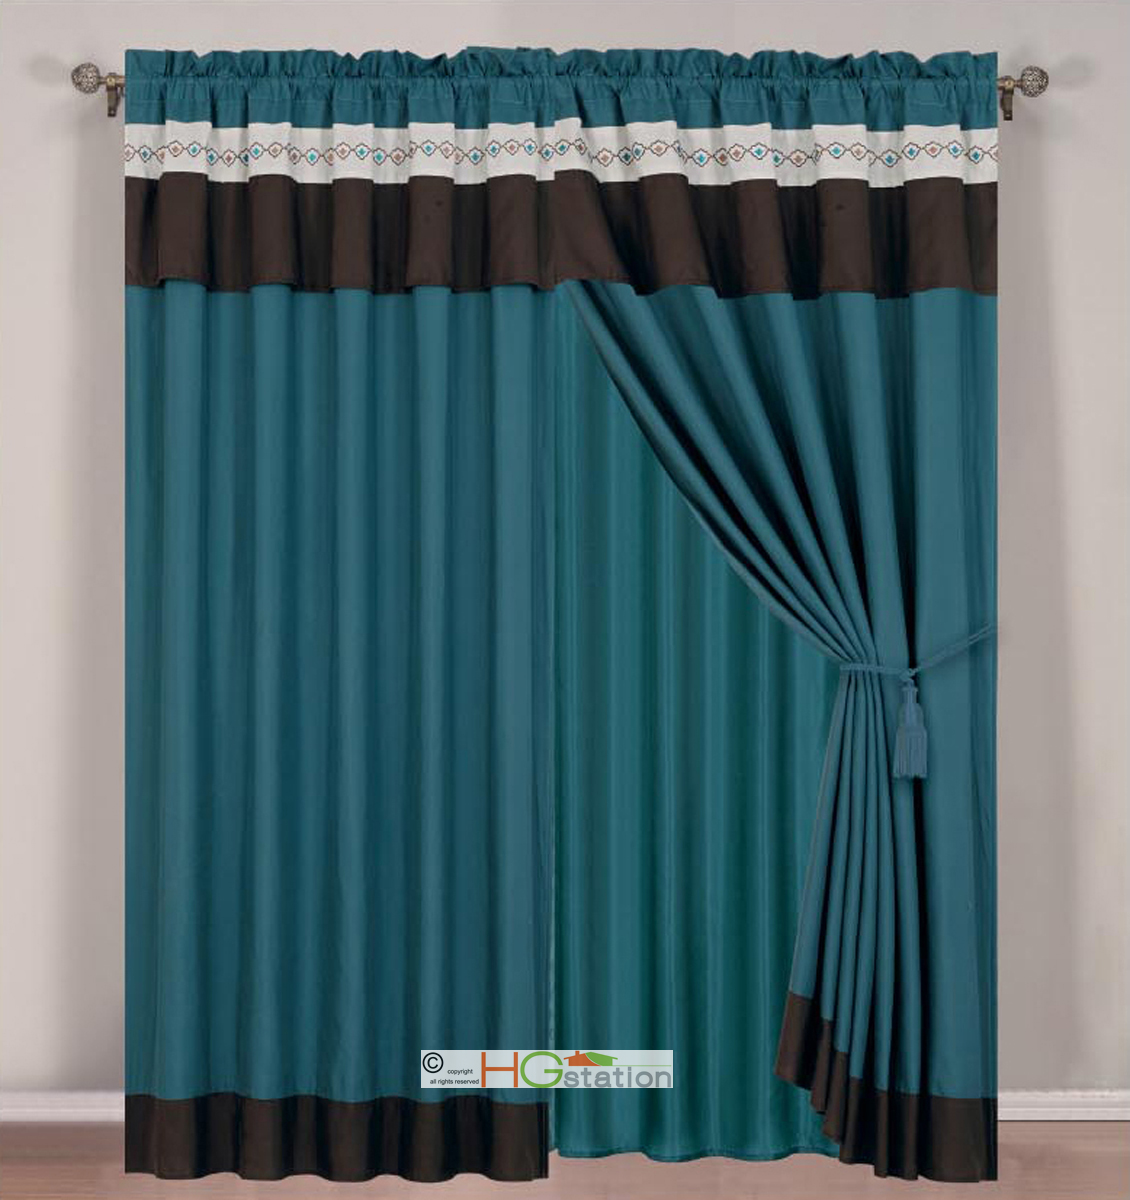 Curtain Deals Teal Curtains Deals On 1001 Blocks